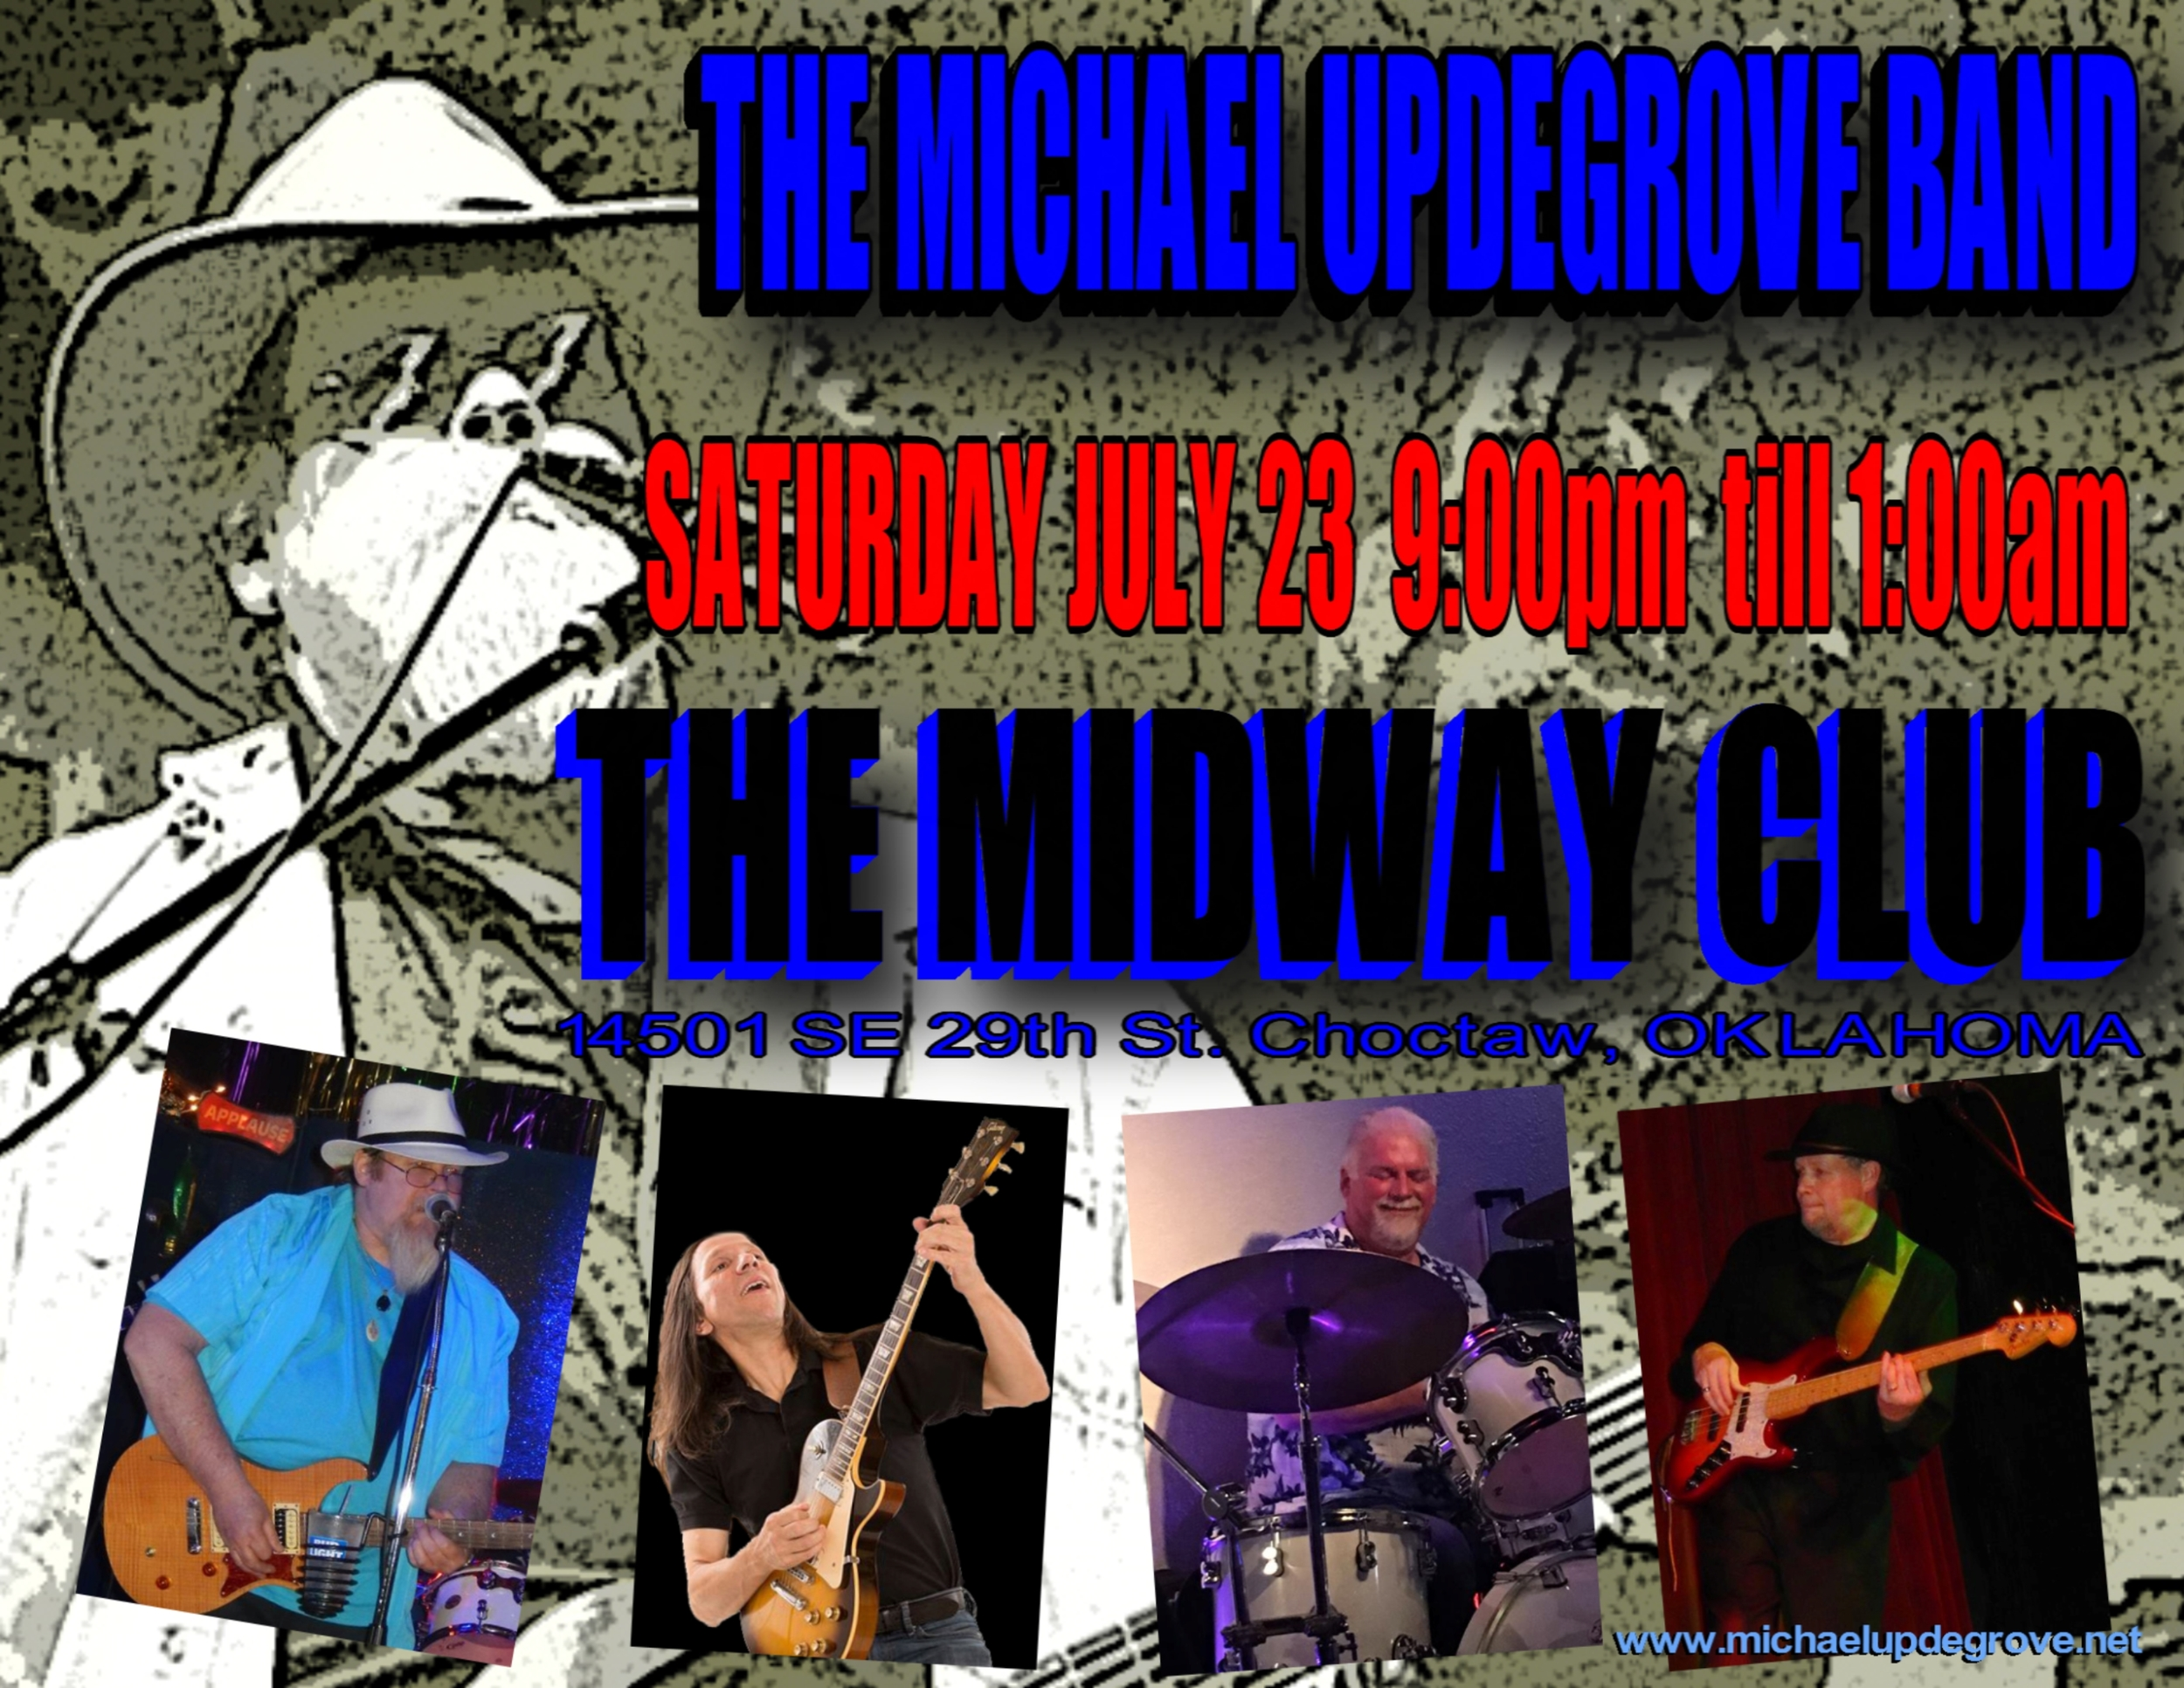 The Midway Club 3.jpg